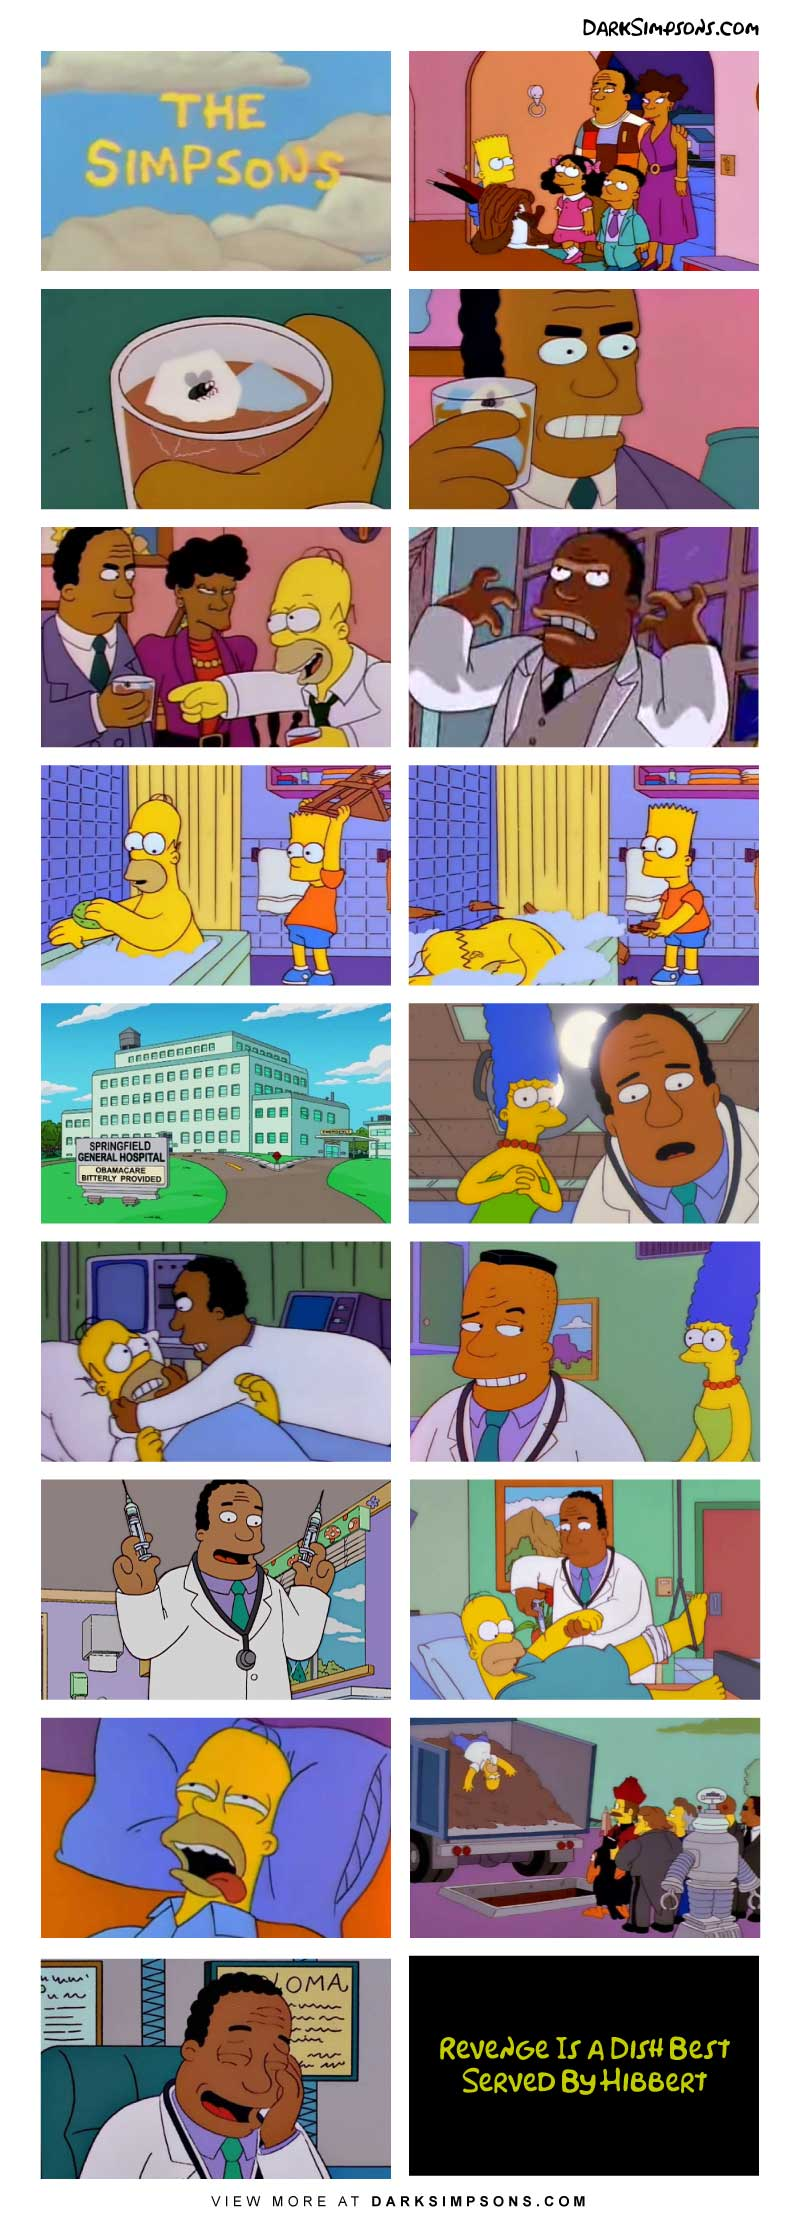 The Simpson family is holding a dinner party. And Dr. Hibbert get embarrassed in a way he won't ever forget.